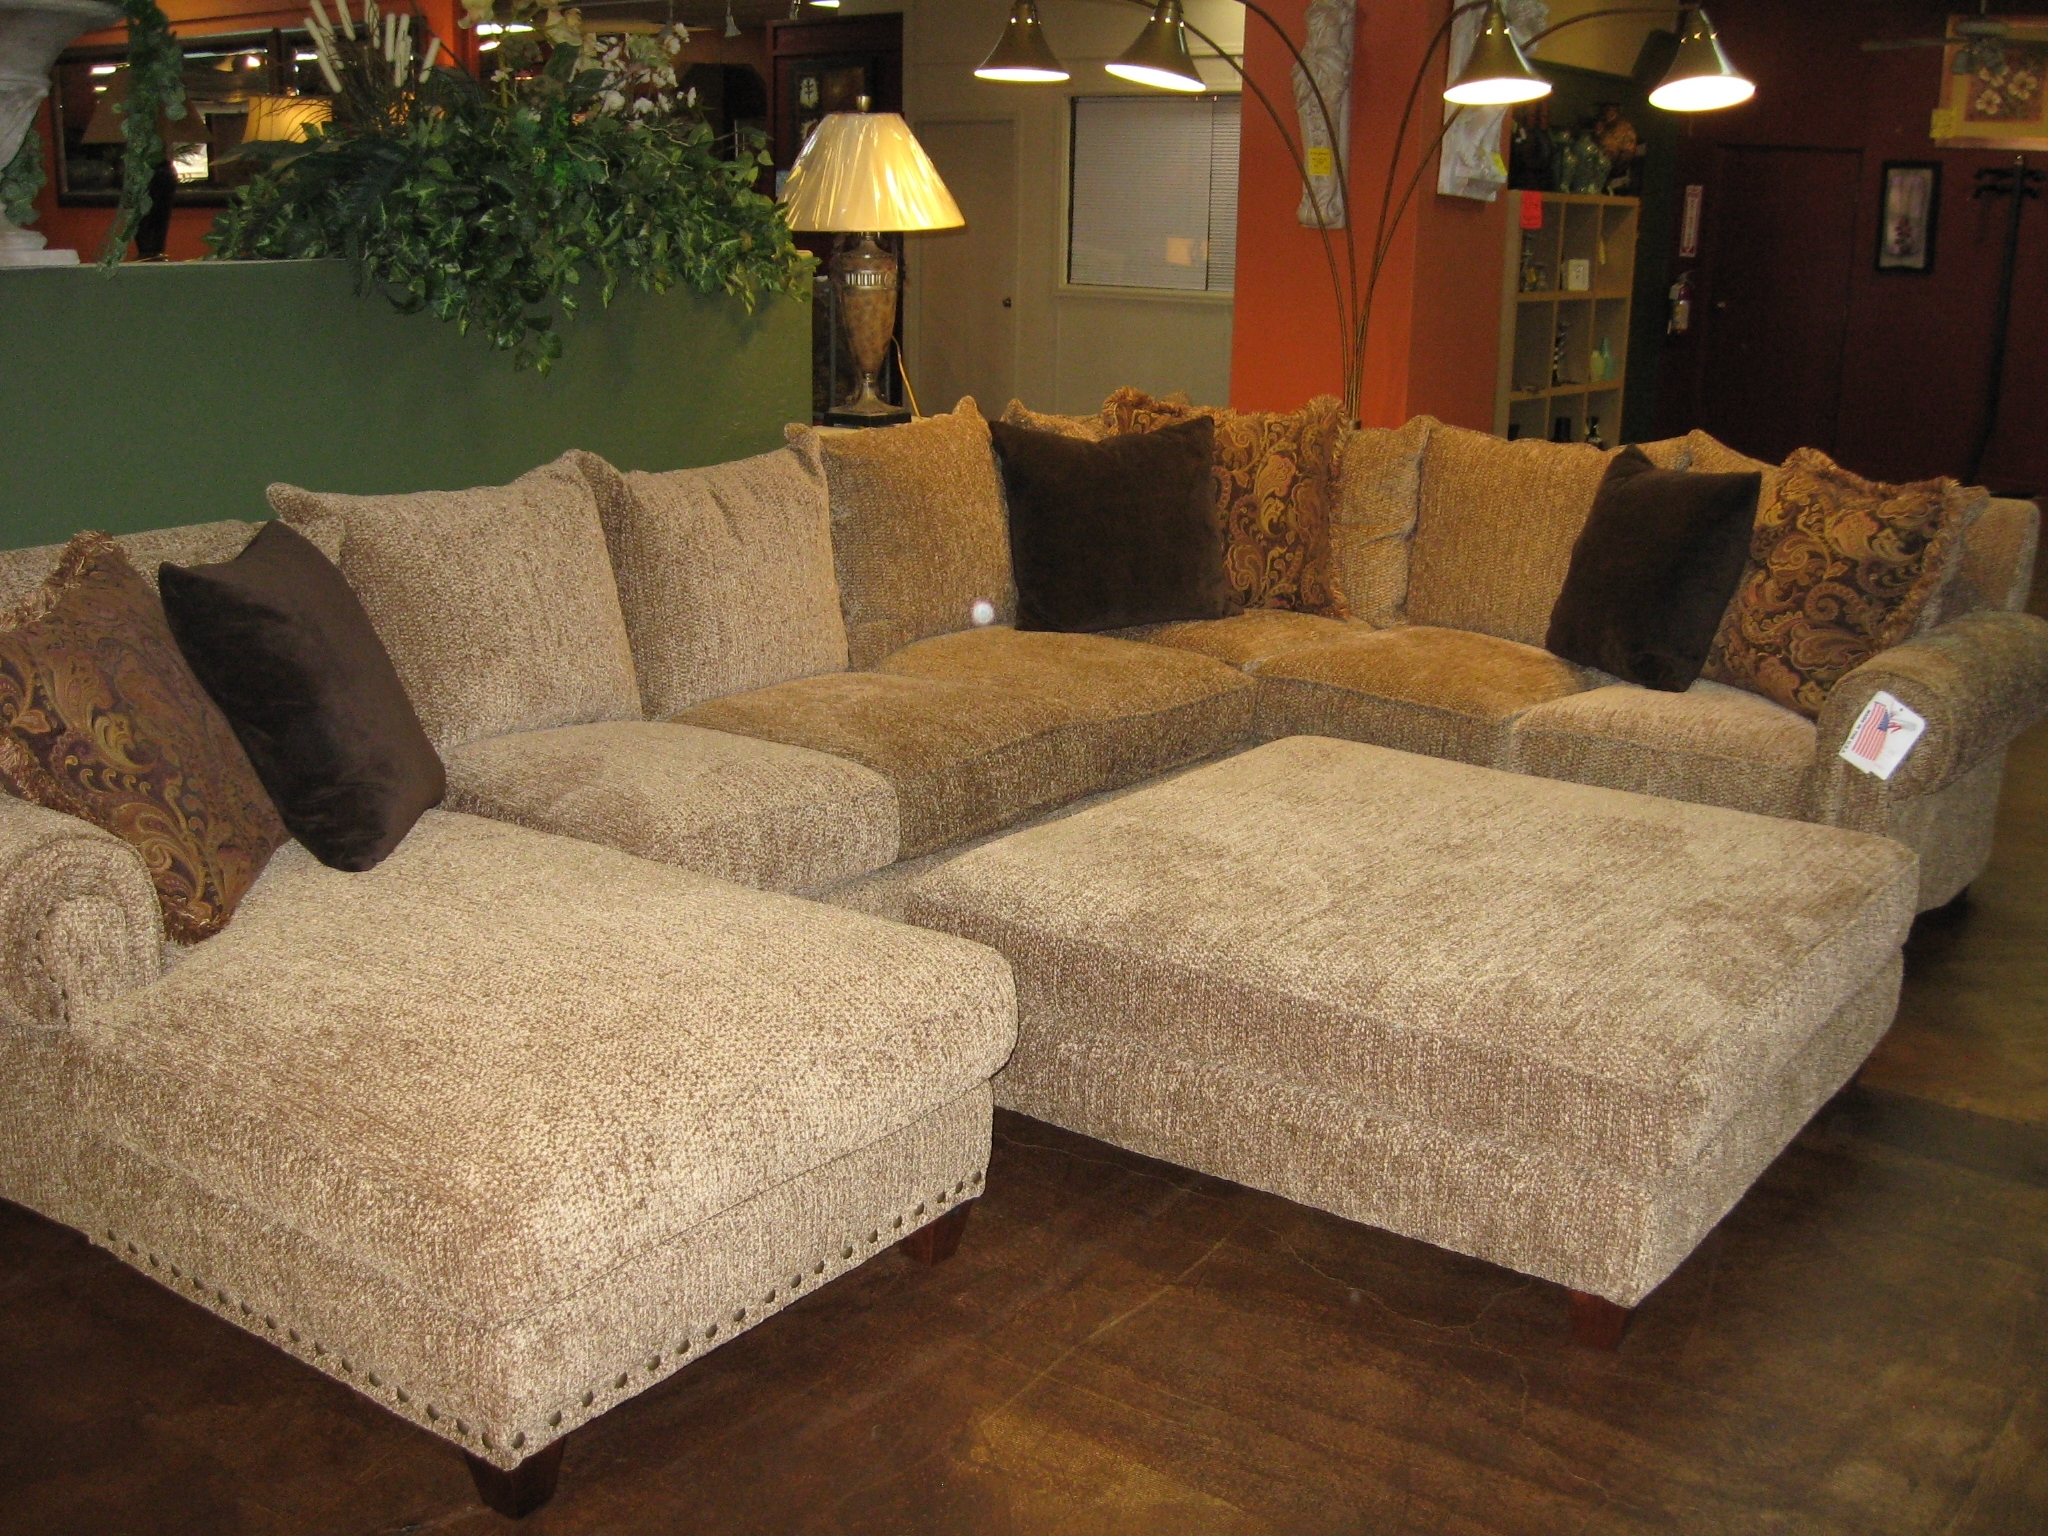 Elegant Large Sectional Sofa With Ottoman 52 With Additional Modern Throughout Couches With Large Ottoman (View 5 of 10)